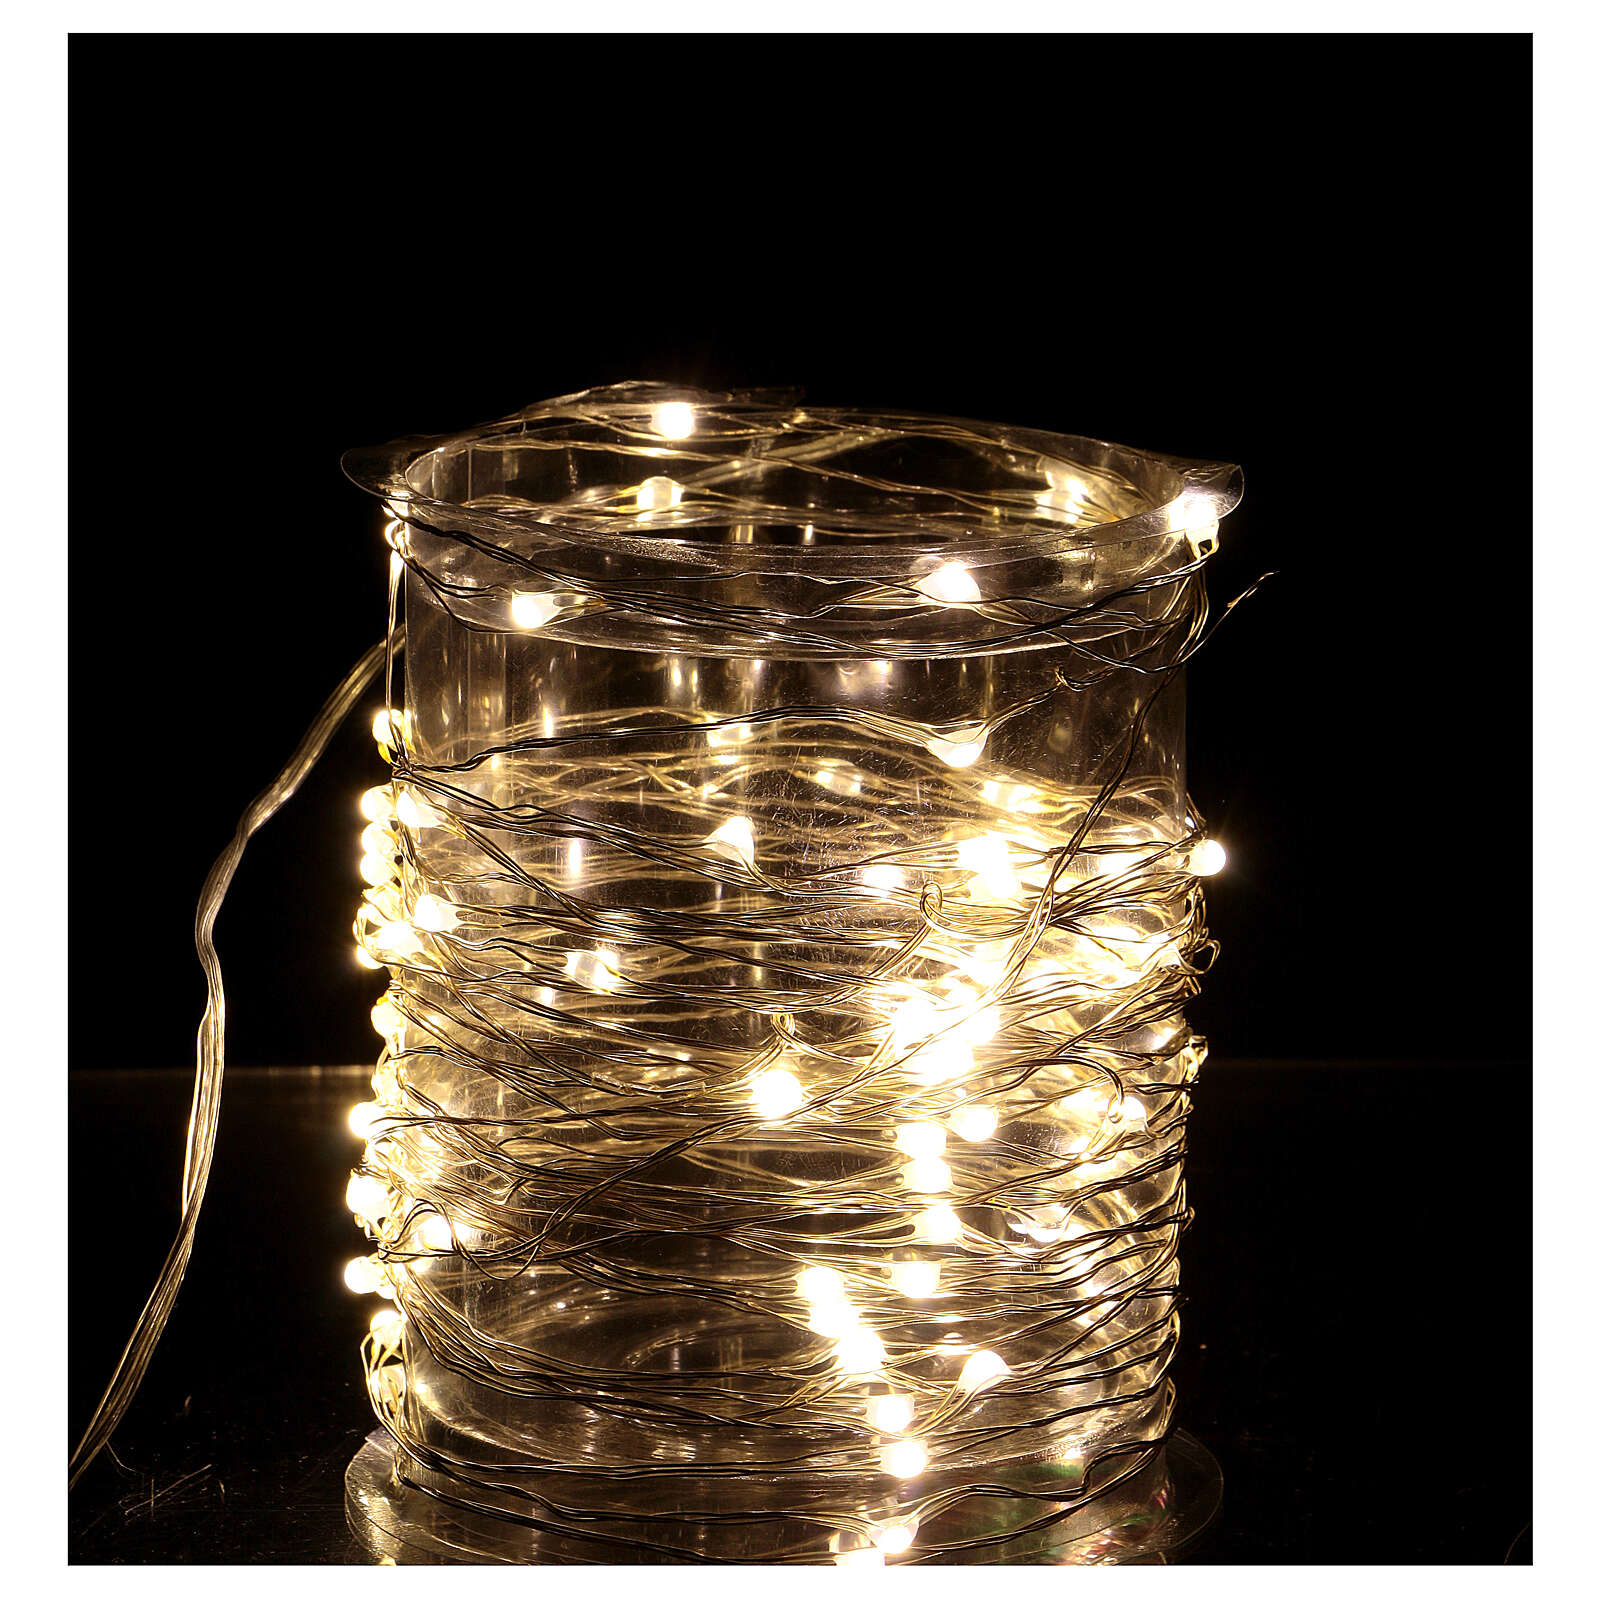 Decorative Lights 100 Nano LED With Clear Wire and Warm Light 3